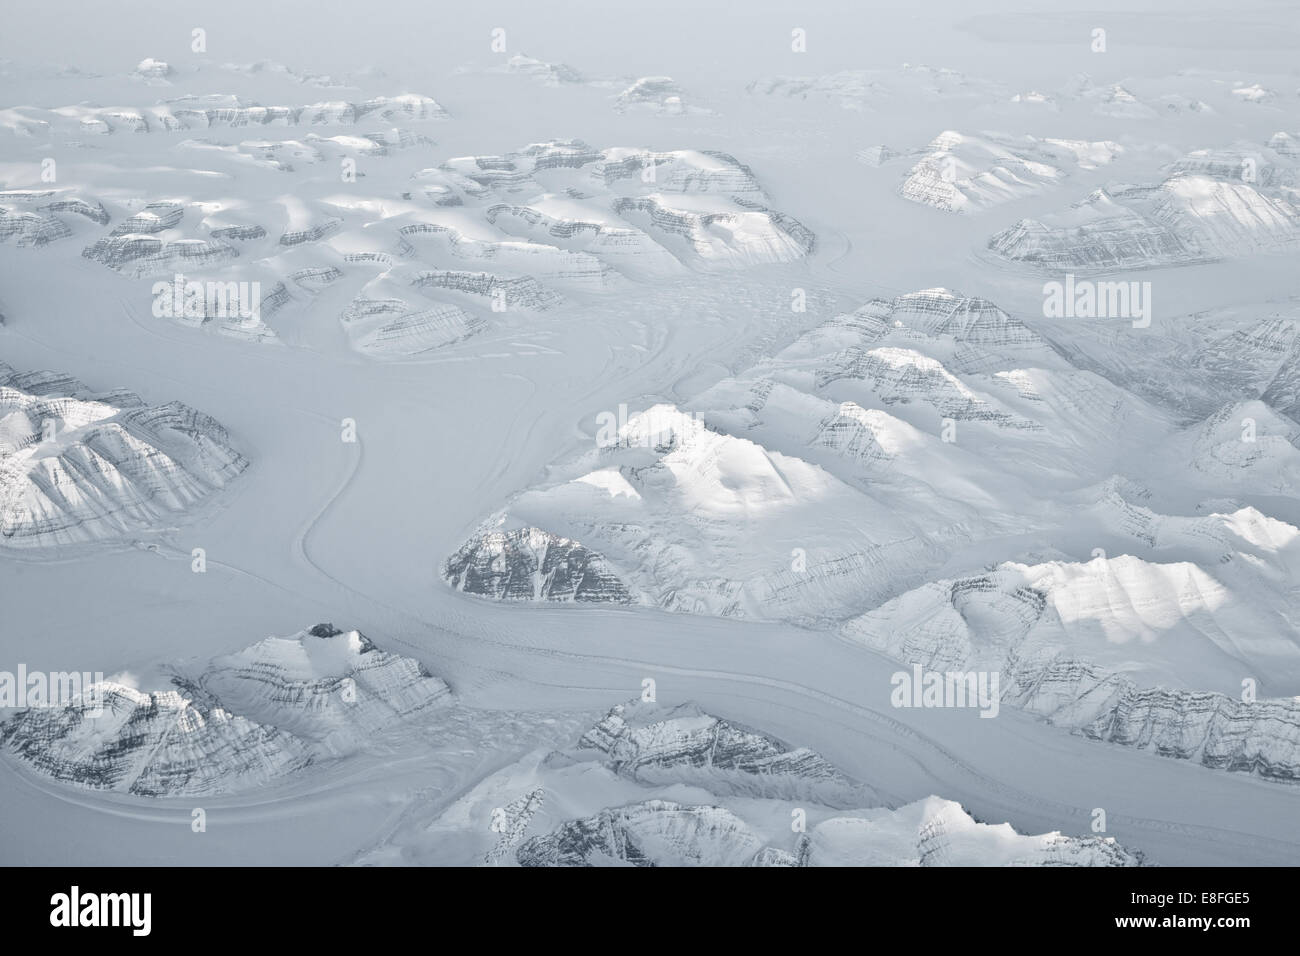 Snow-capped mountains, Greenland - Stock Image